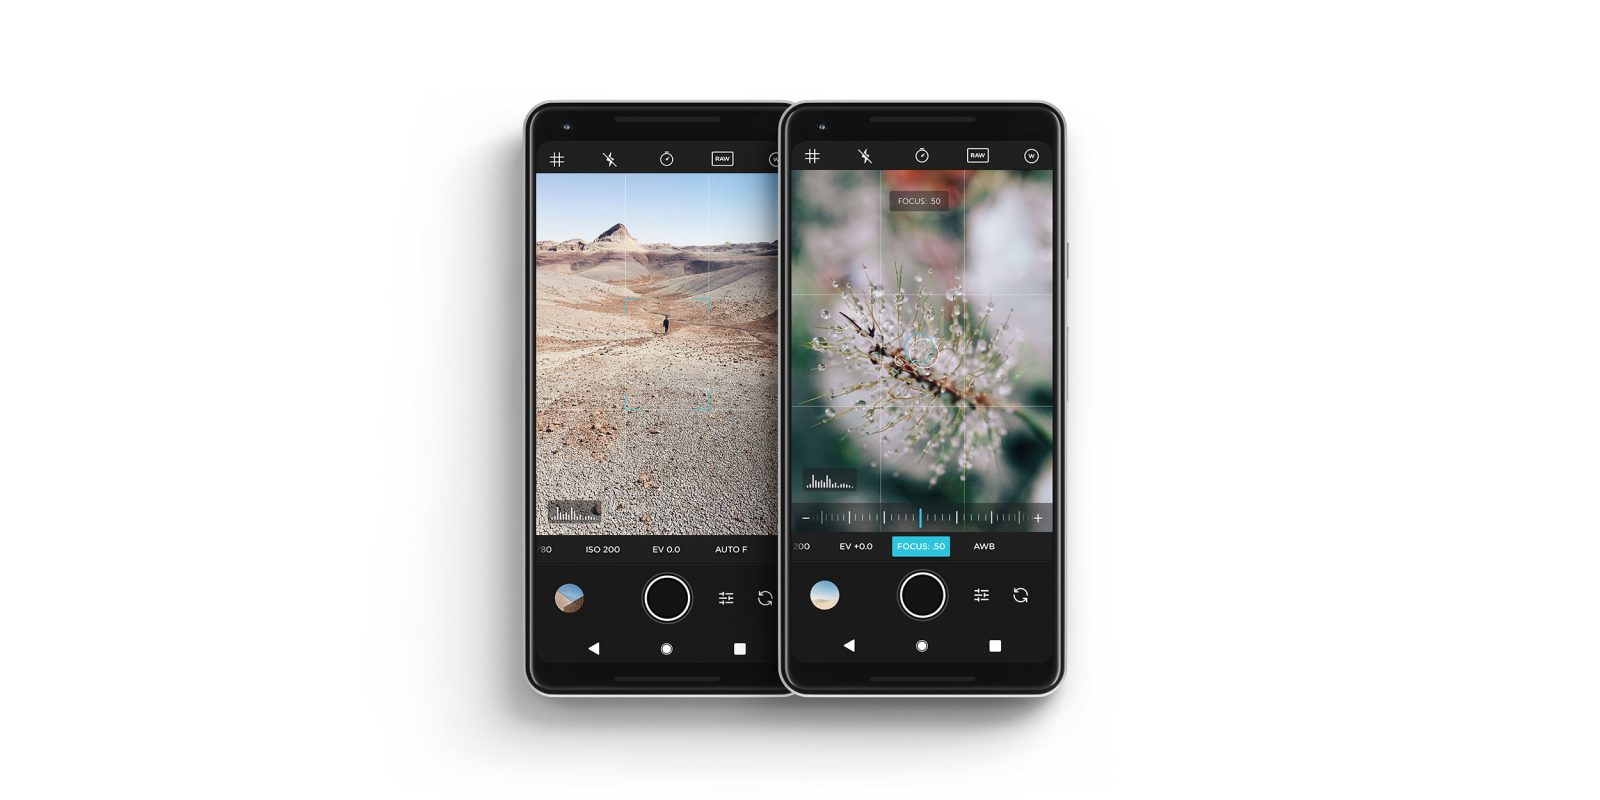 'Moment Pro Camera' brings full manual camera controls to Android, will use Pixel Visual Core